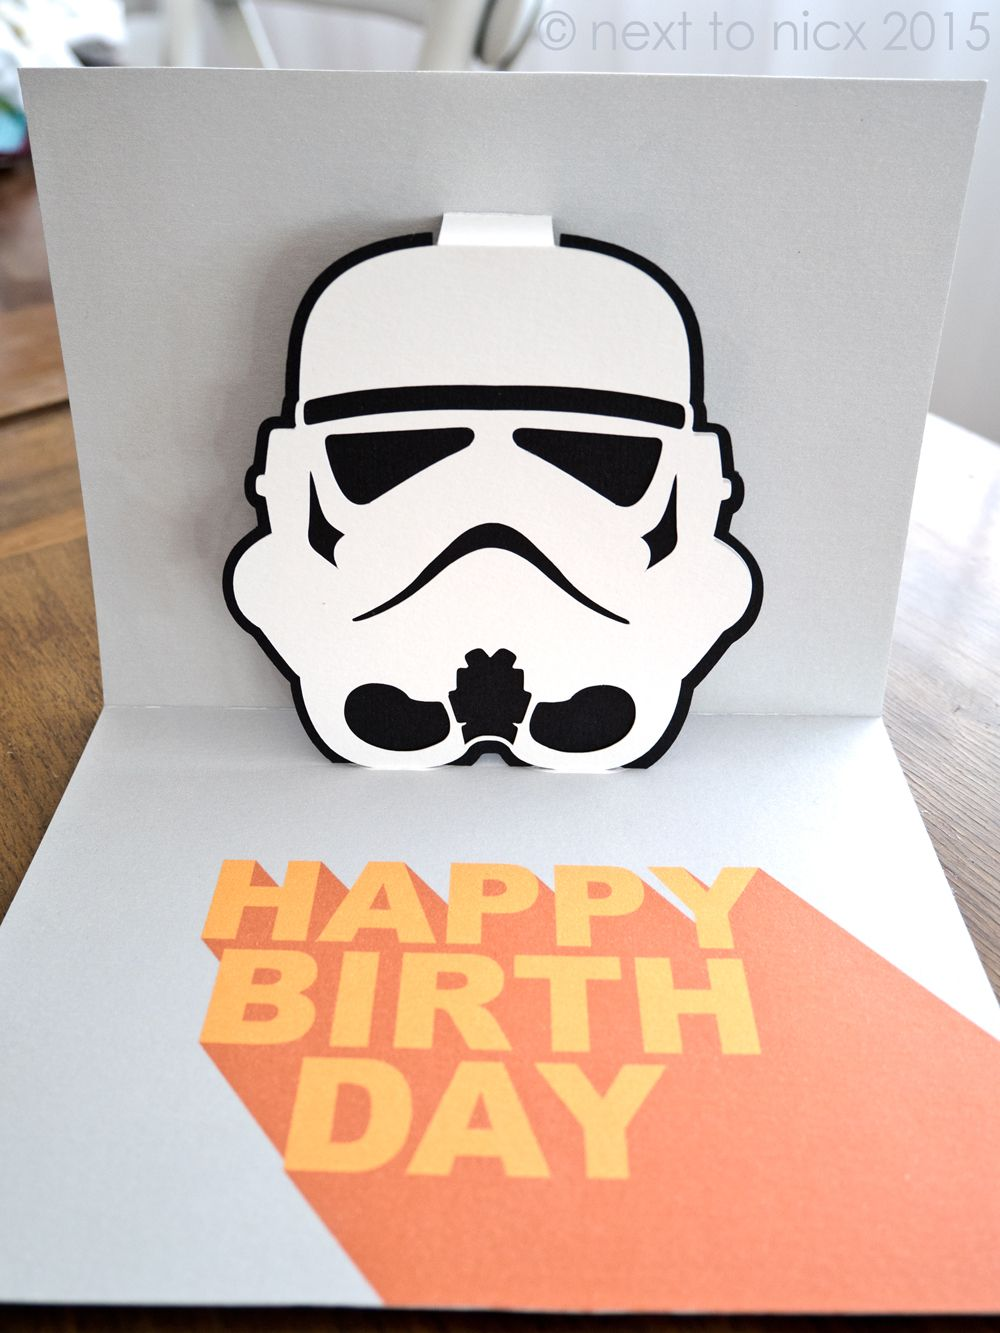 Stormtrooper Pop Up Card Cricut Birthday Cards Pop Up Card Templates Star Wars Cards